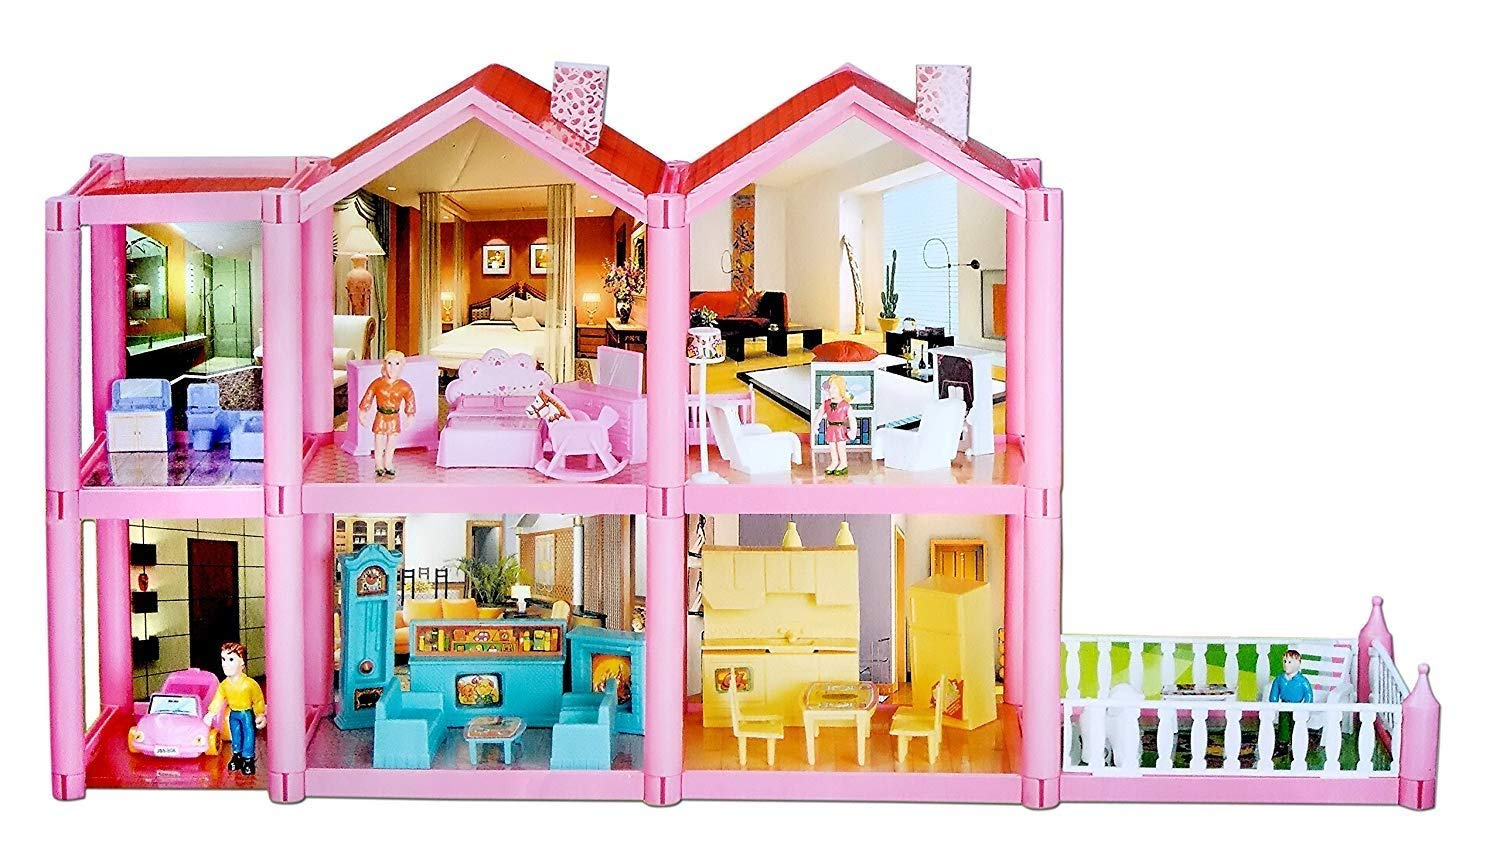 Toyshine DIY 136 Pcs Doll House Accessories Included